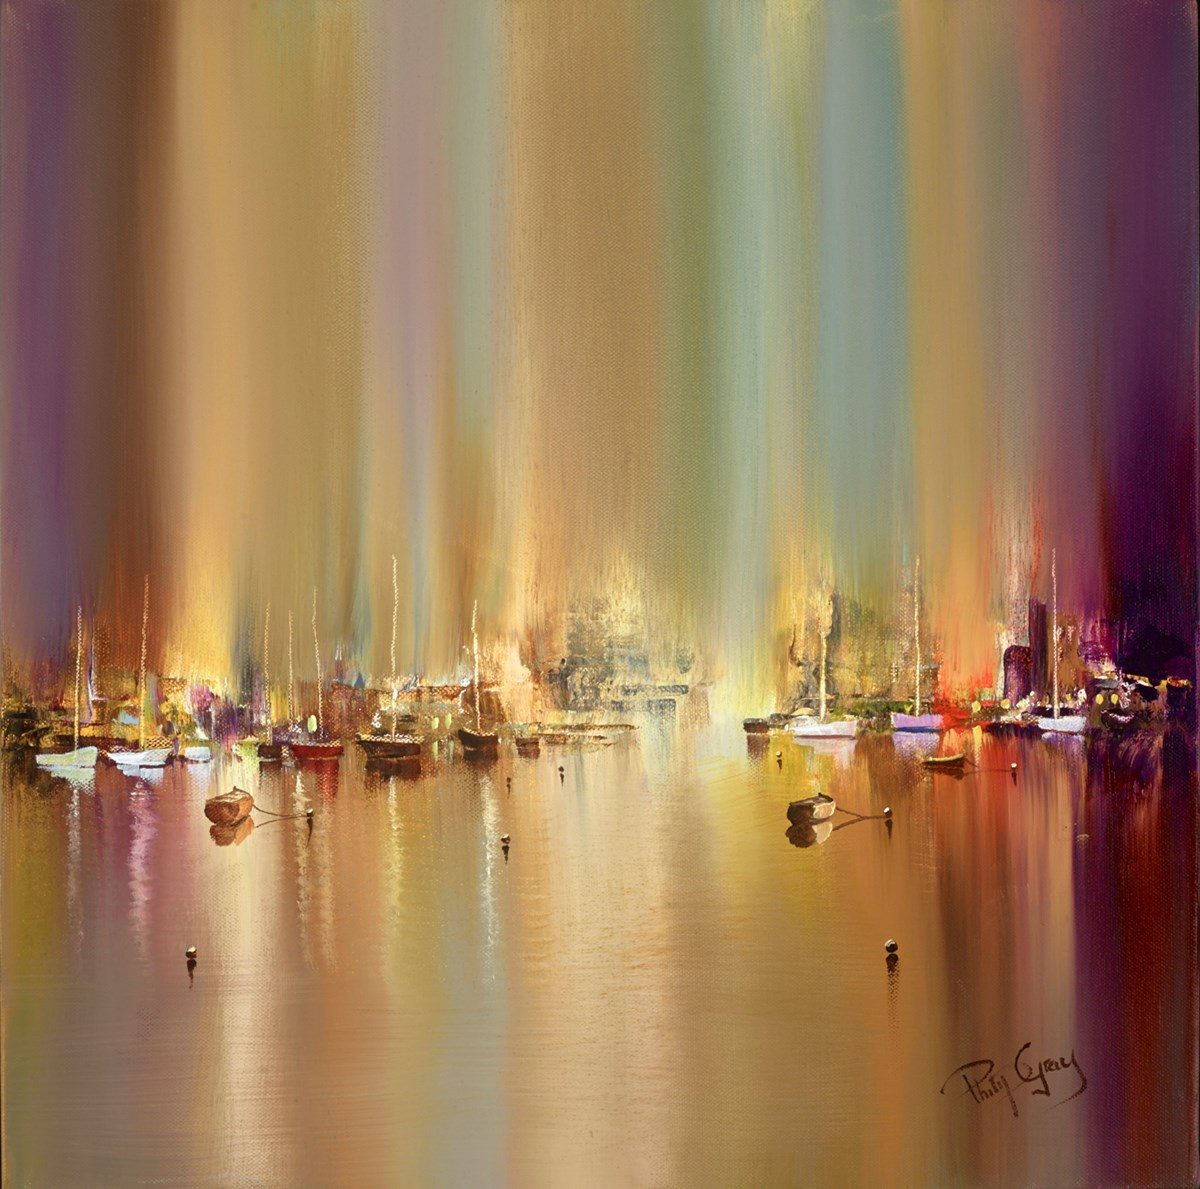 Quiet Harbour VI by philip gray -  sized 20x20 inches. Available from Whitewall Galleries